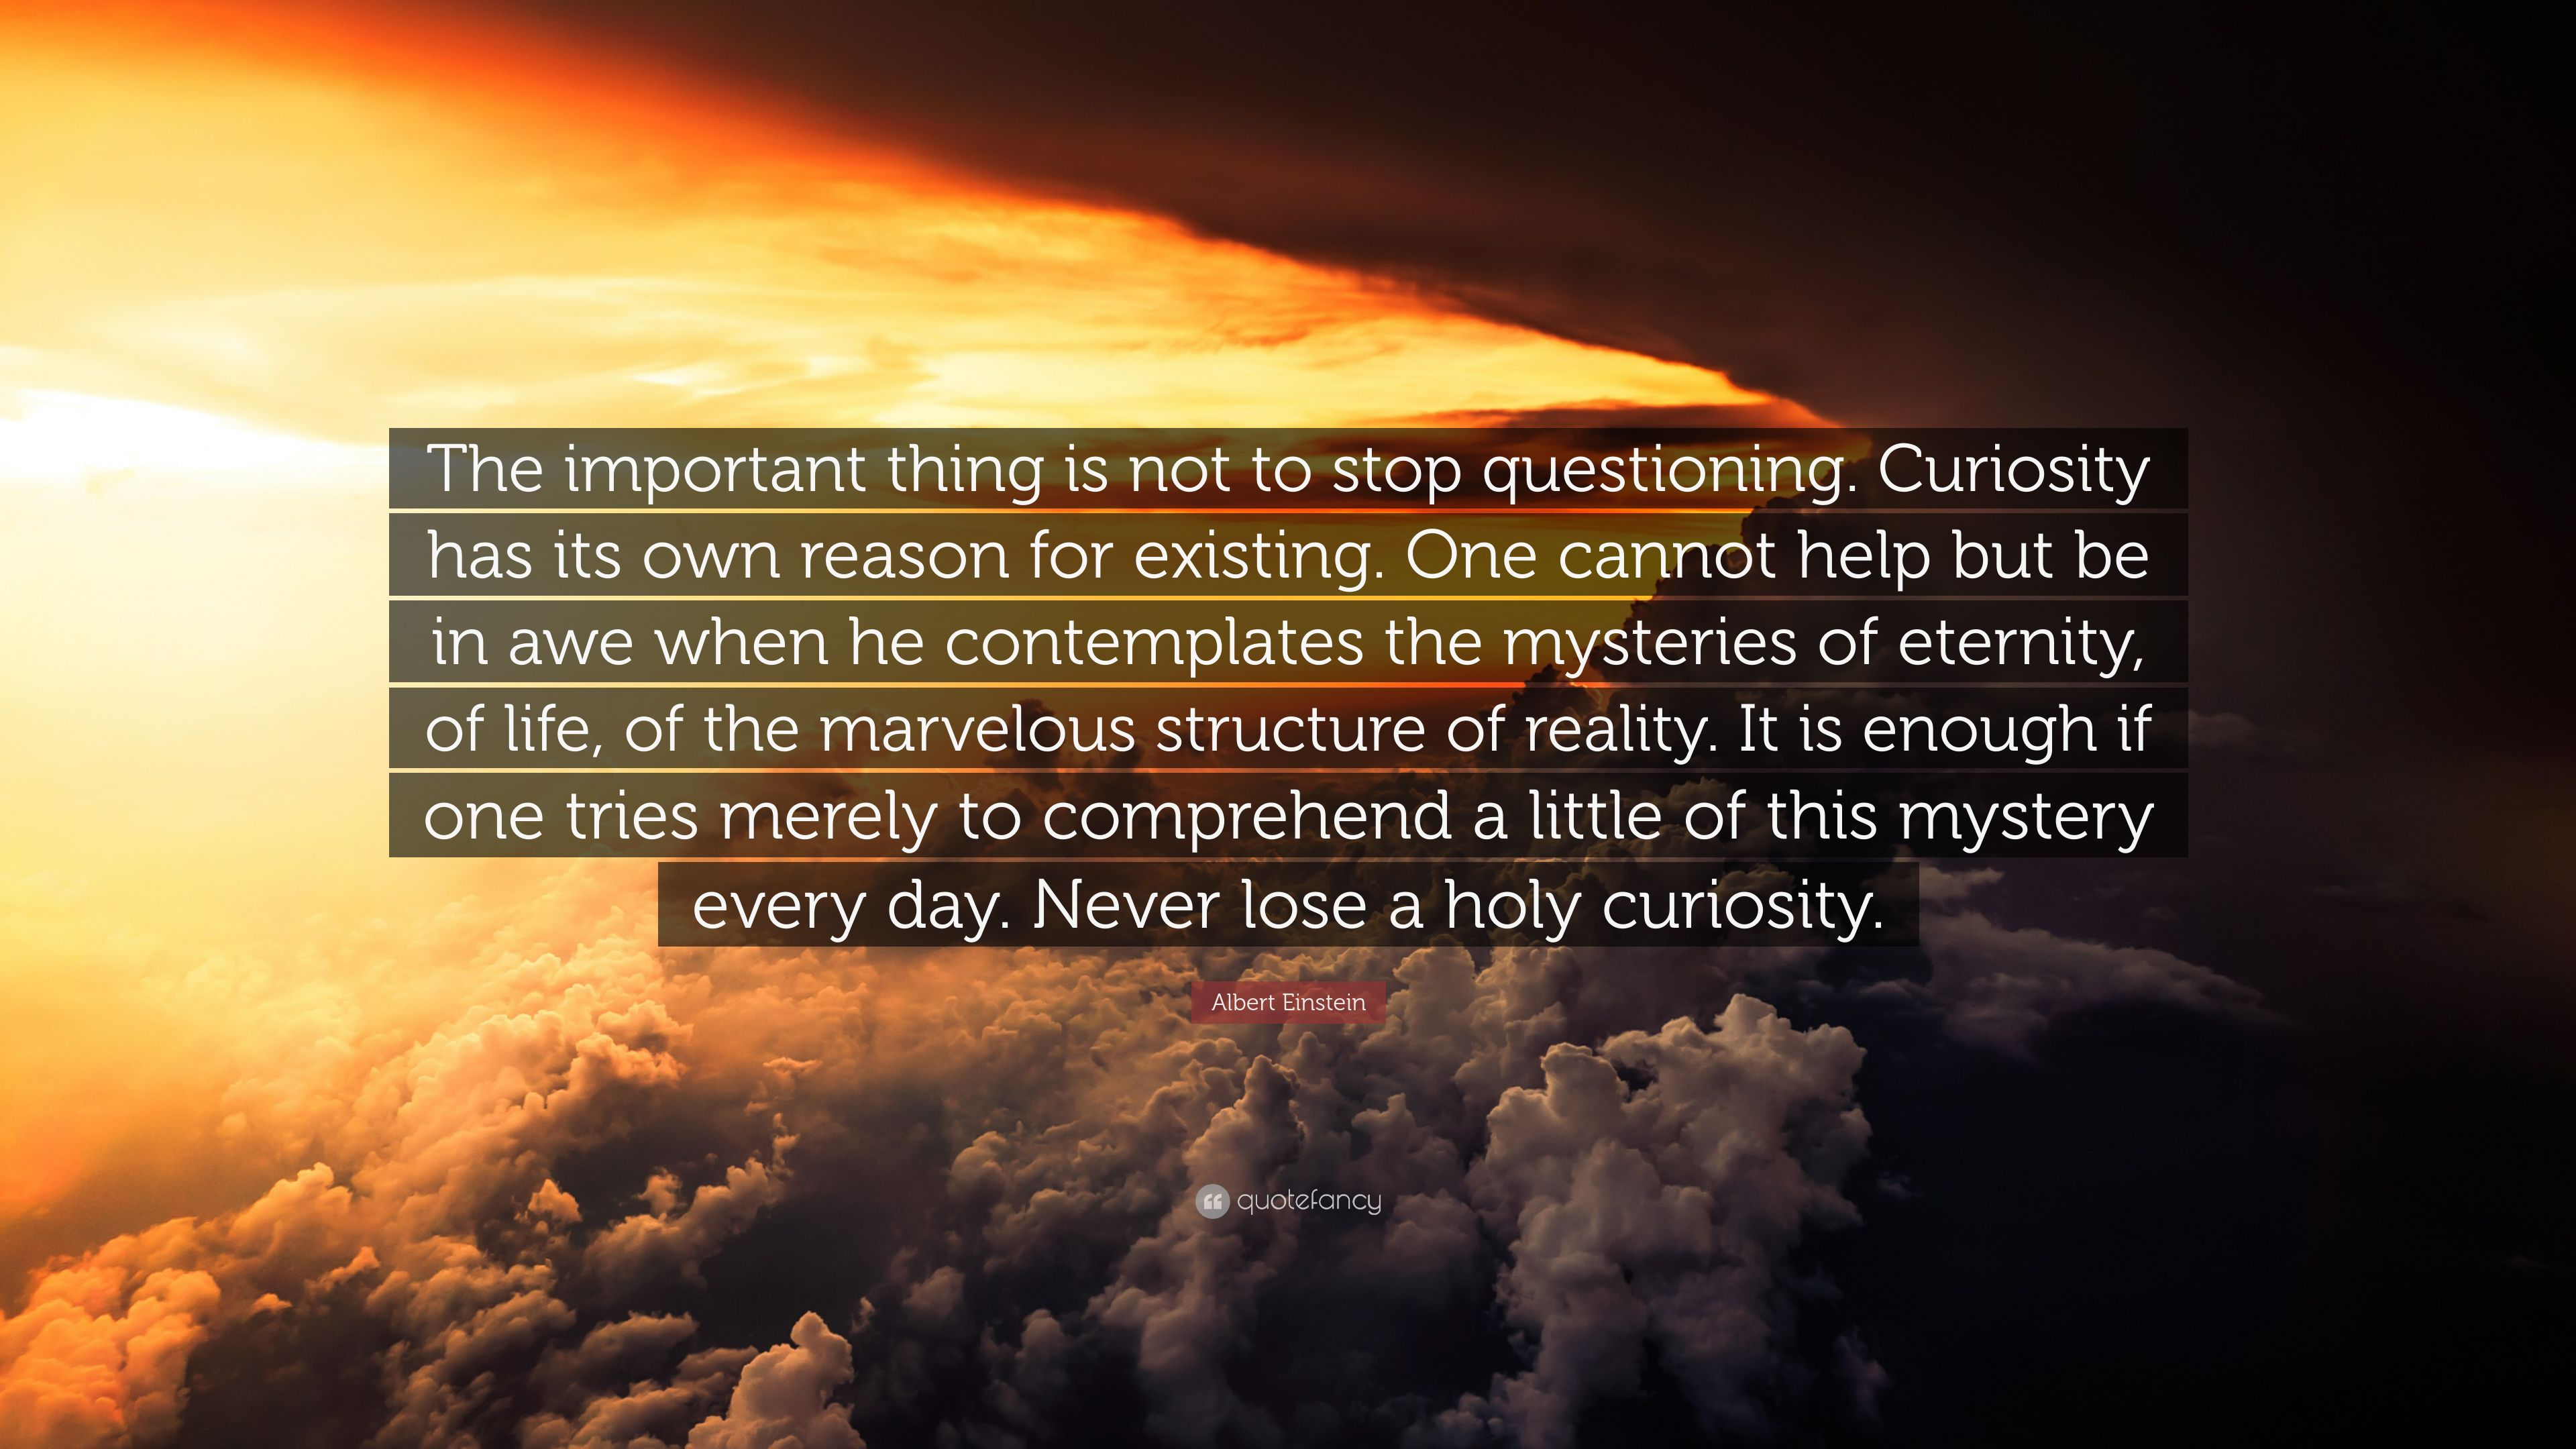 albert einstein quote   u201cthe important thing is not to stop